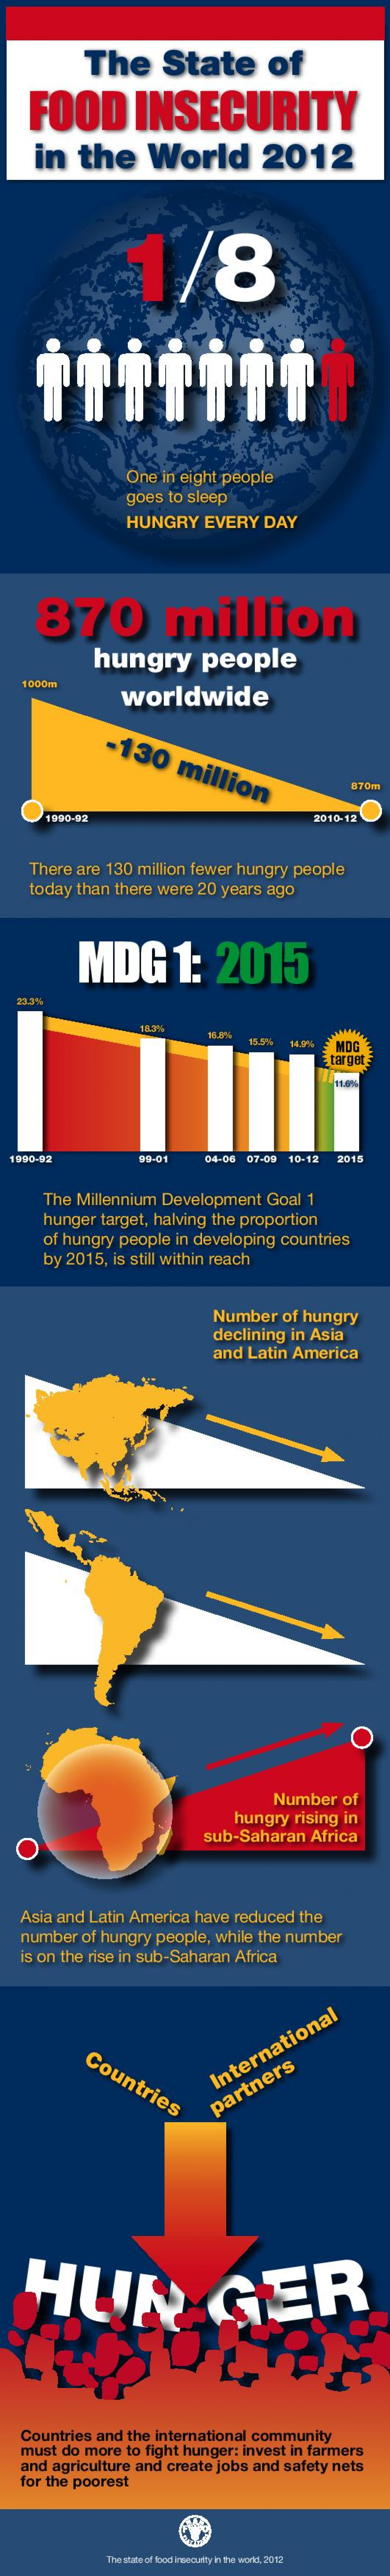 The State of Food Insecurity in the World 2012  Infographic